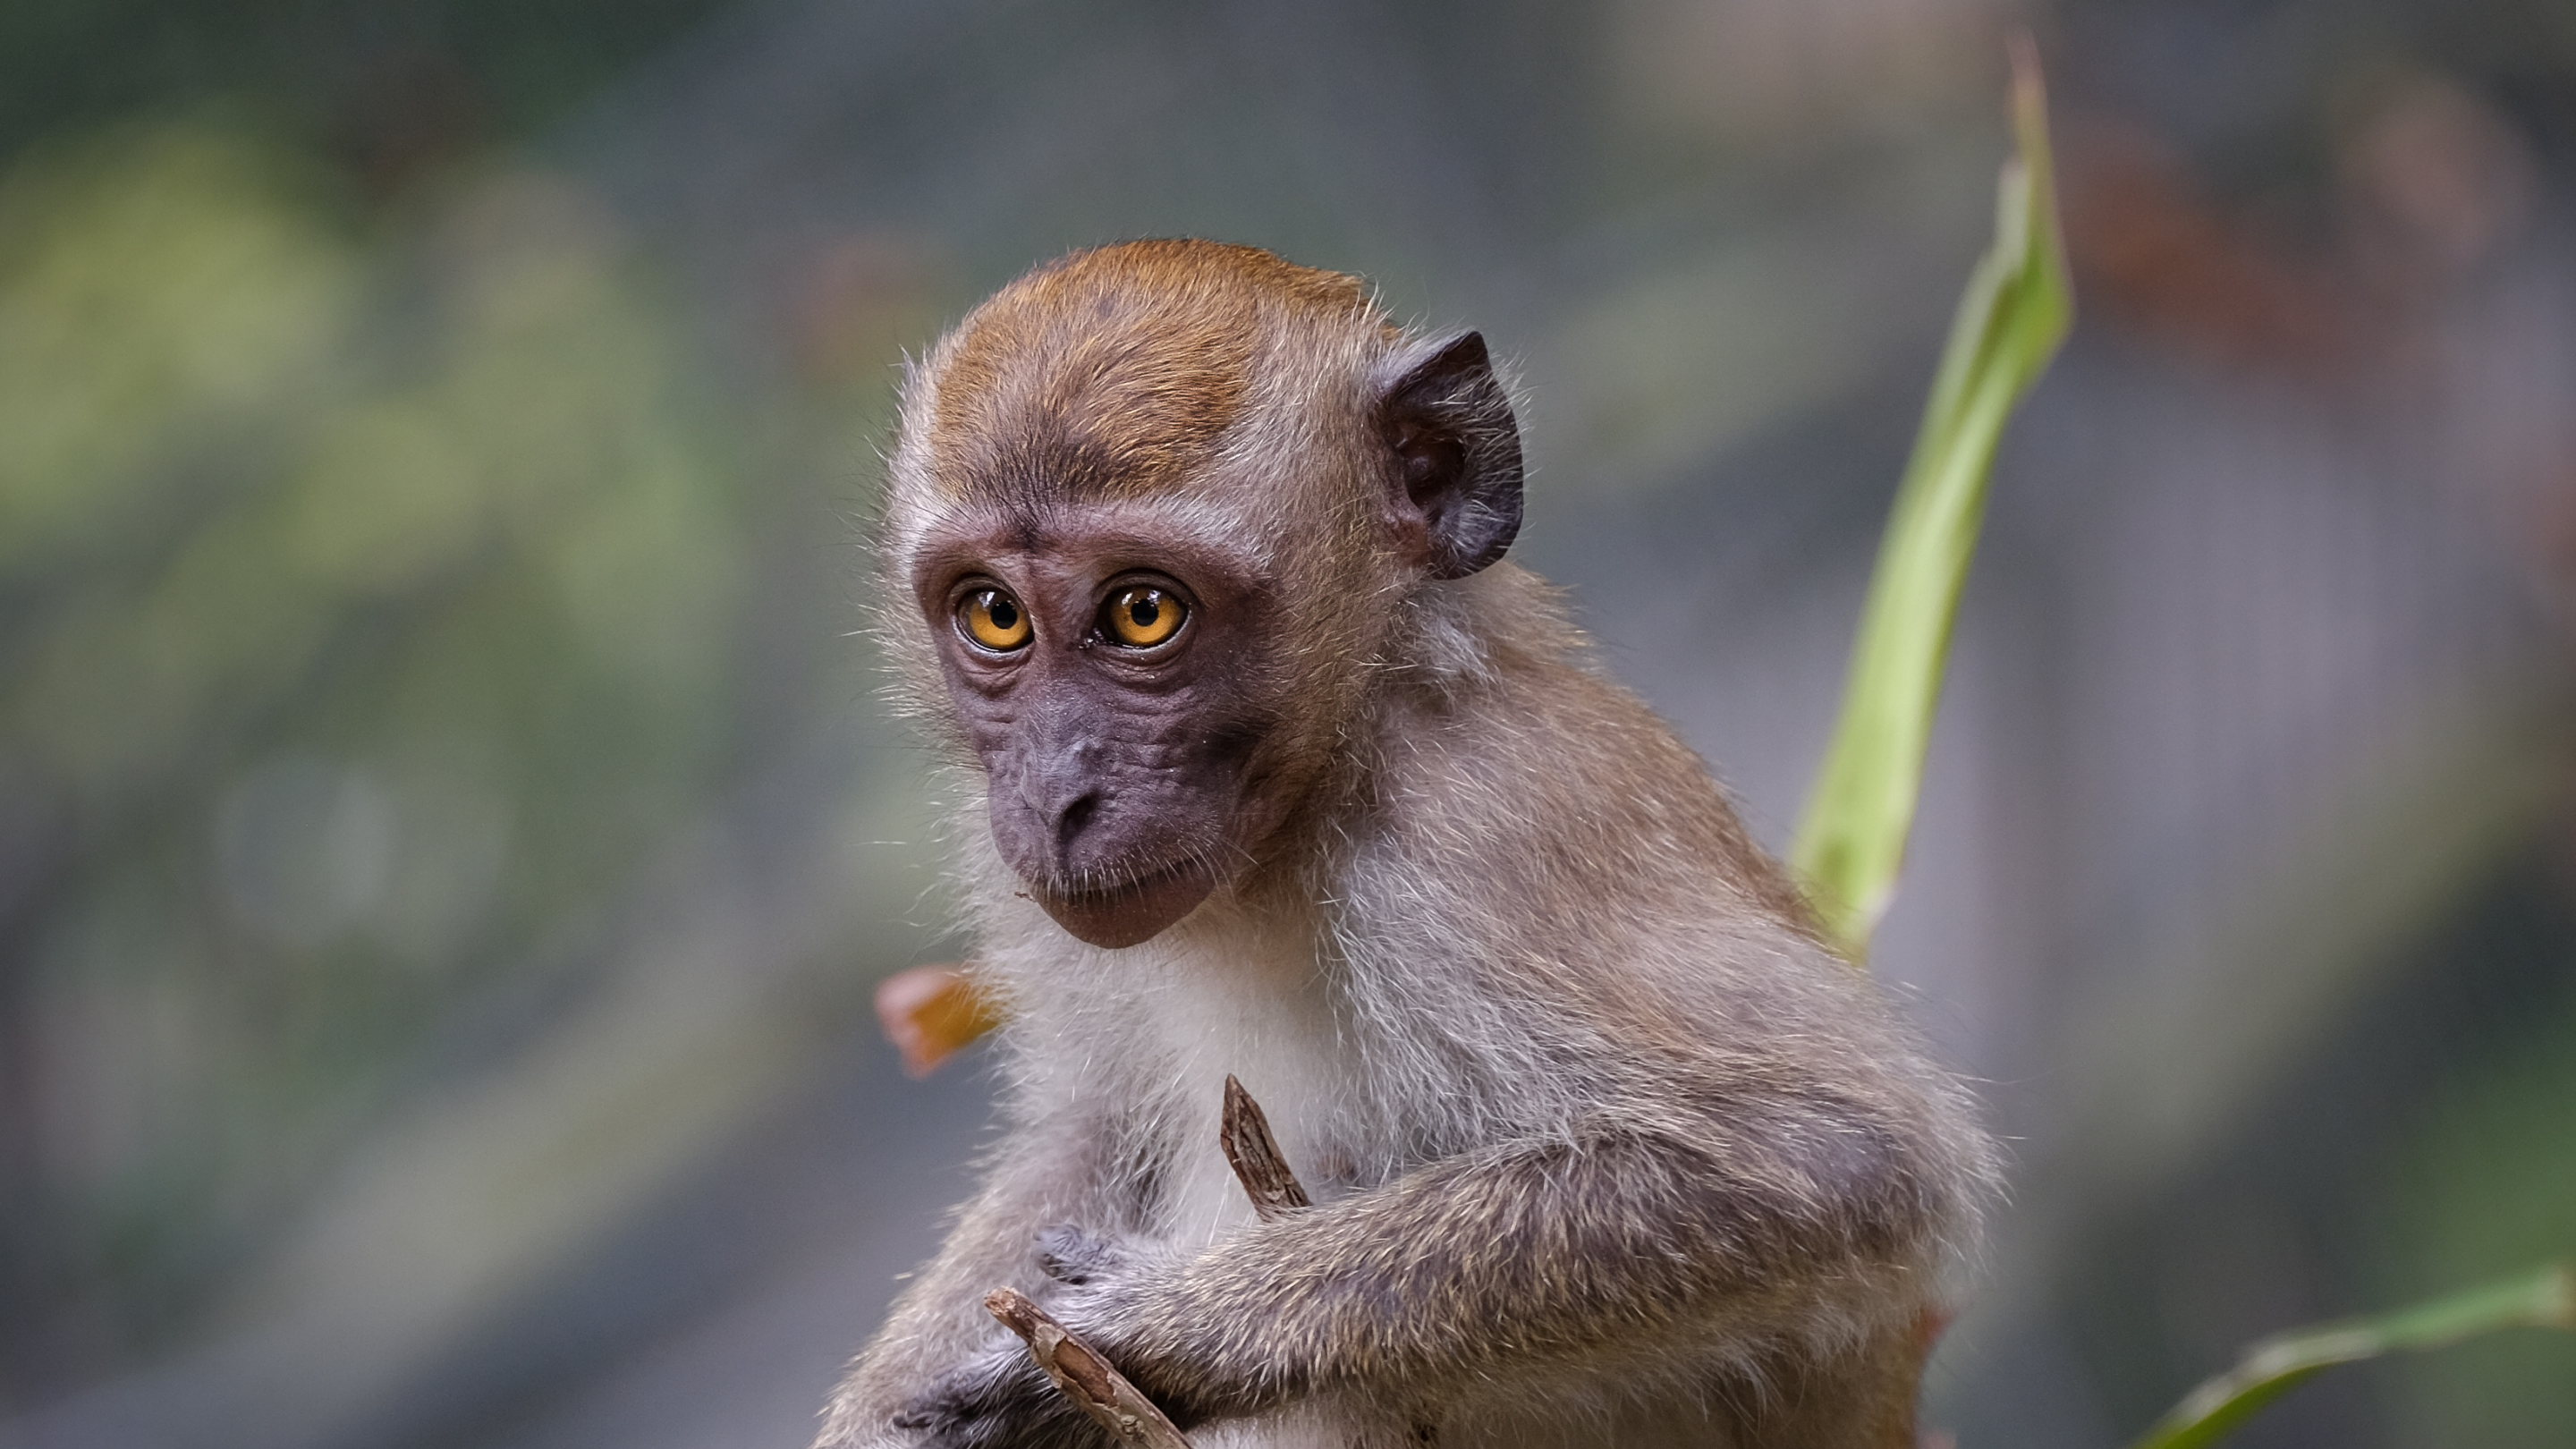 A macaque sits among greenery